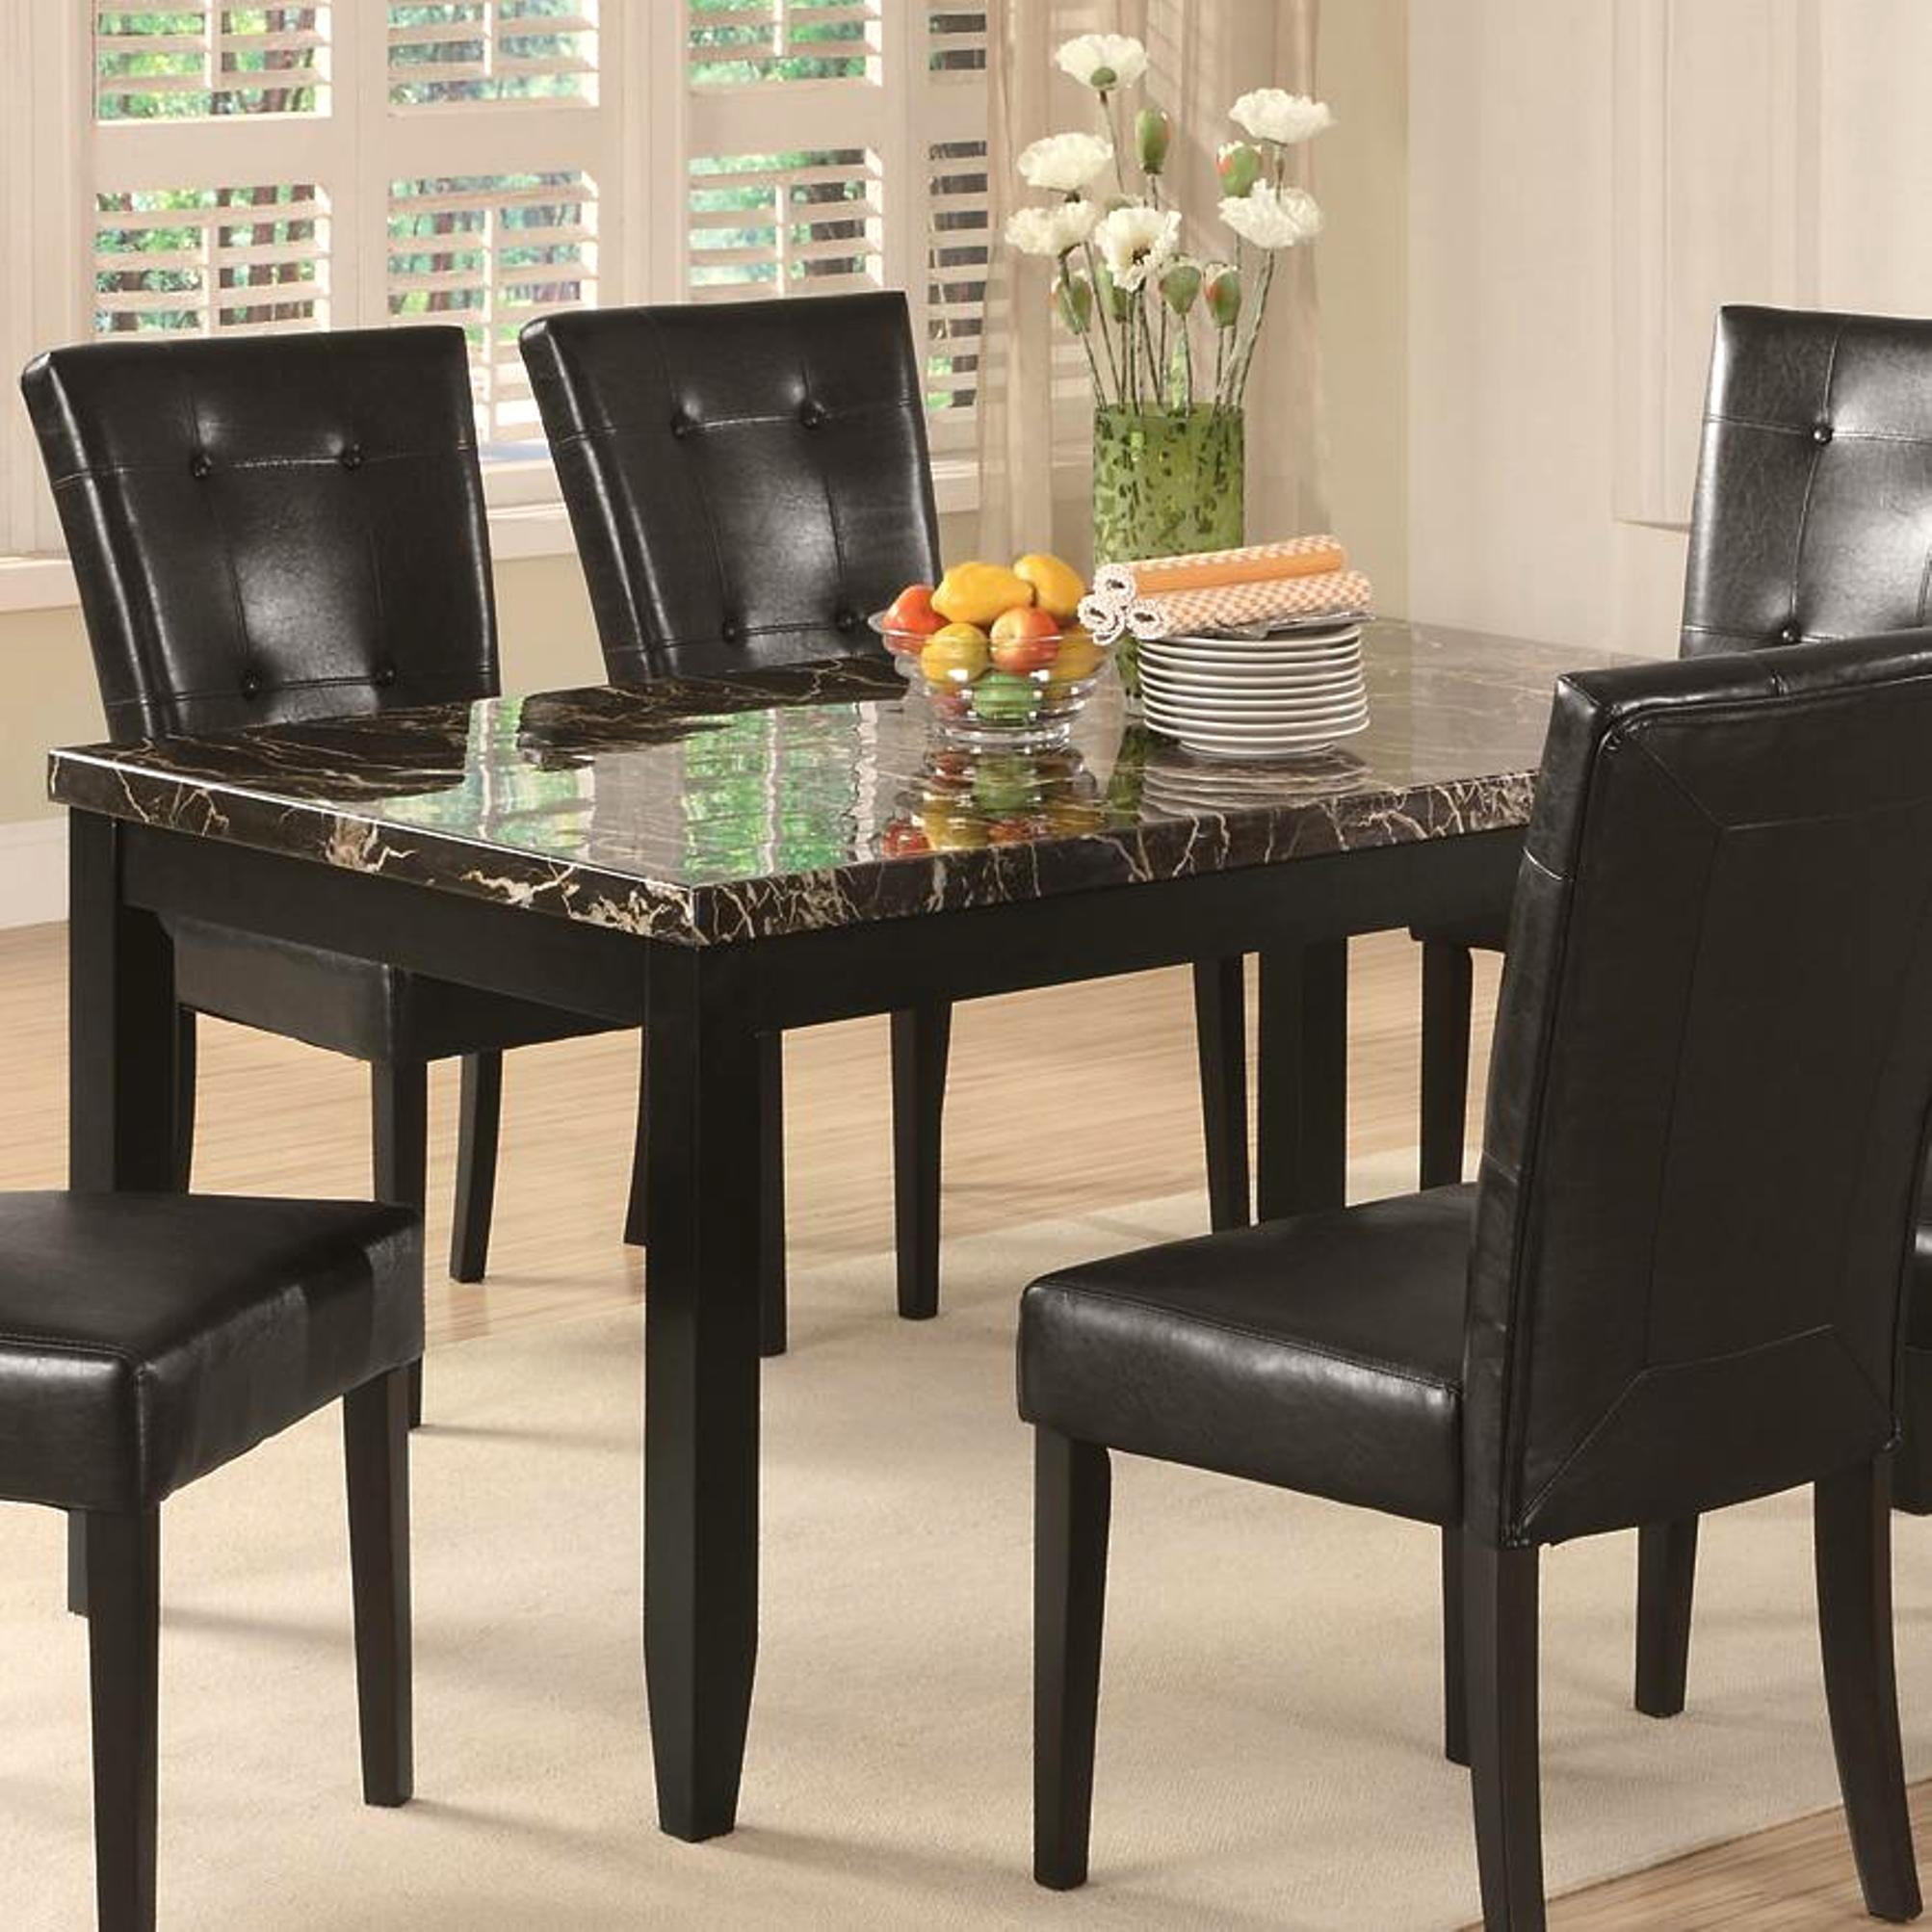 Details About Sasfay Contemporary Style Dining Set With Faux Marble Top